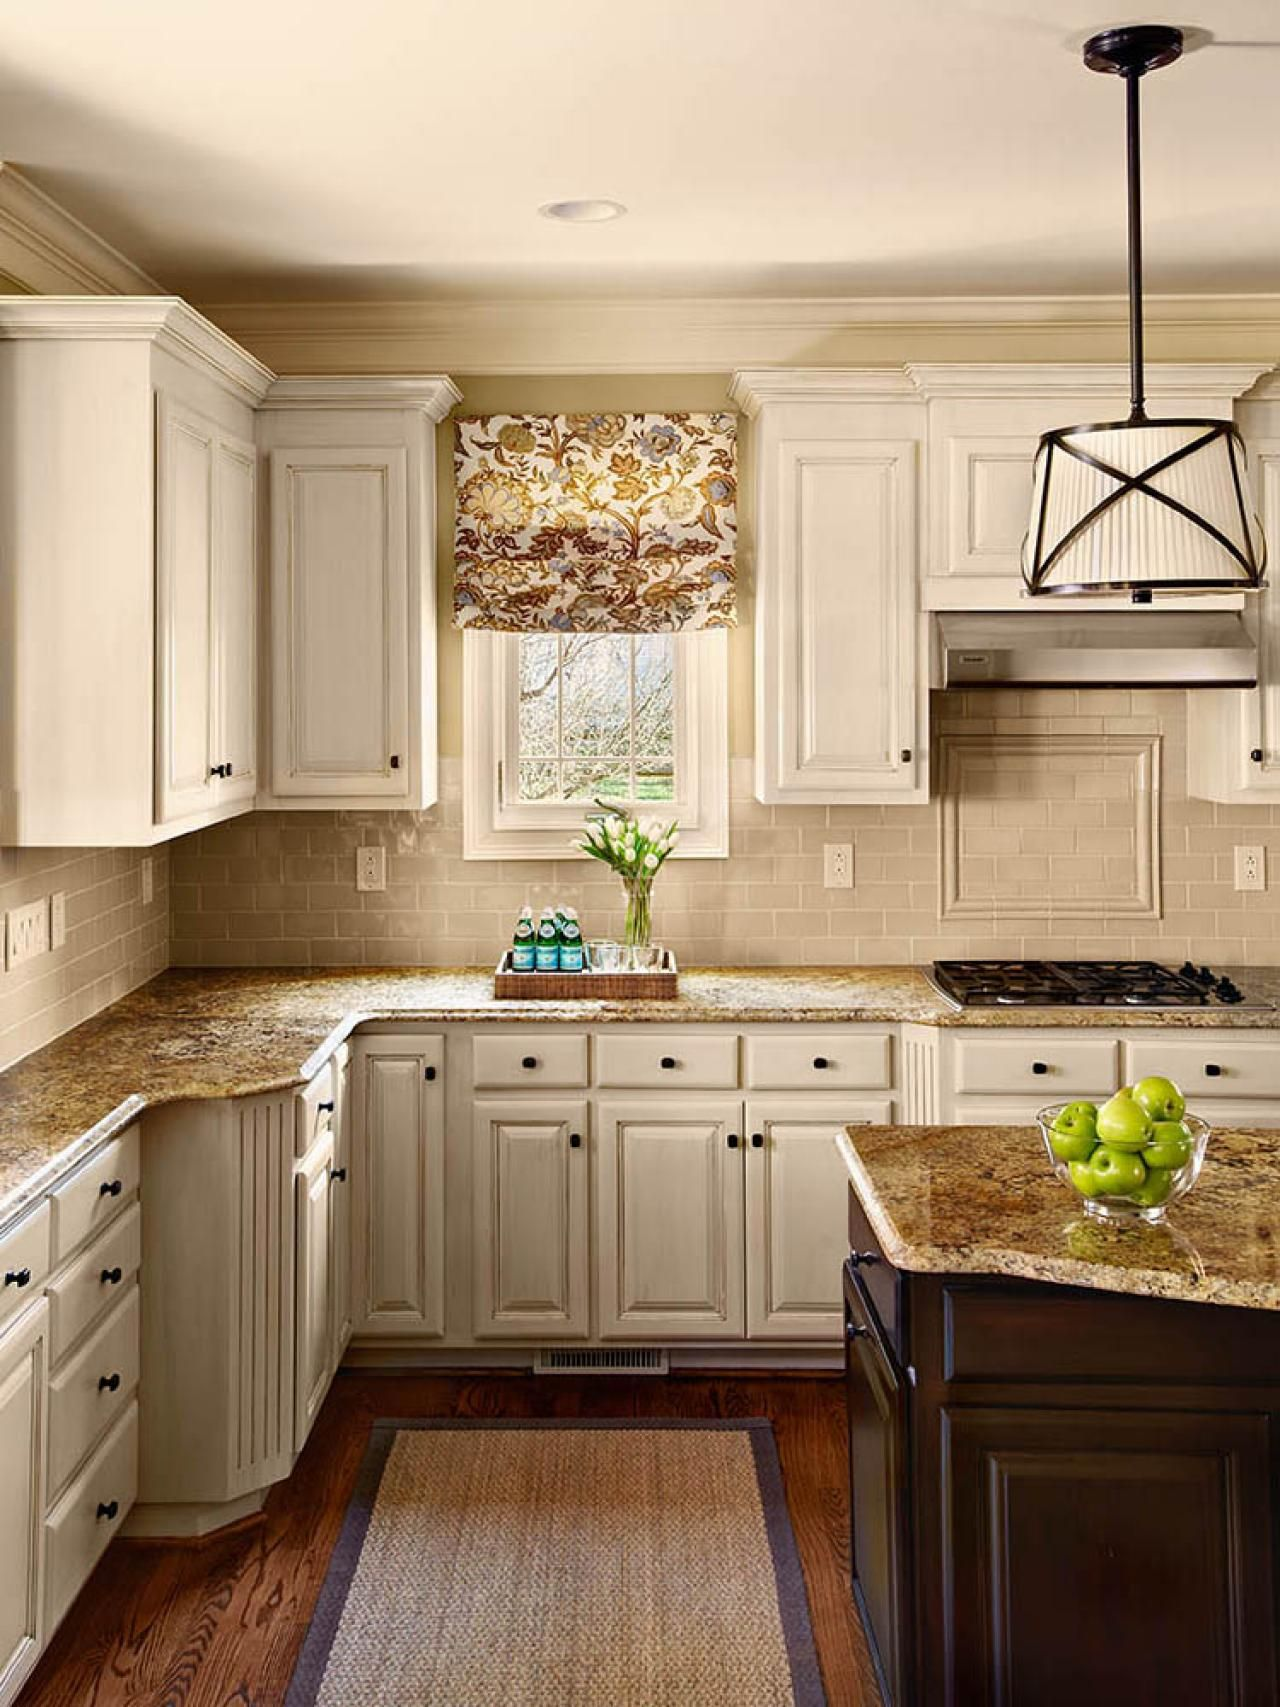 Resurfacing Kitchen Cabinets & Ideas From